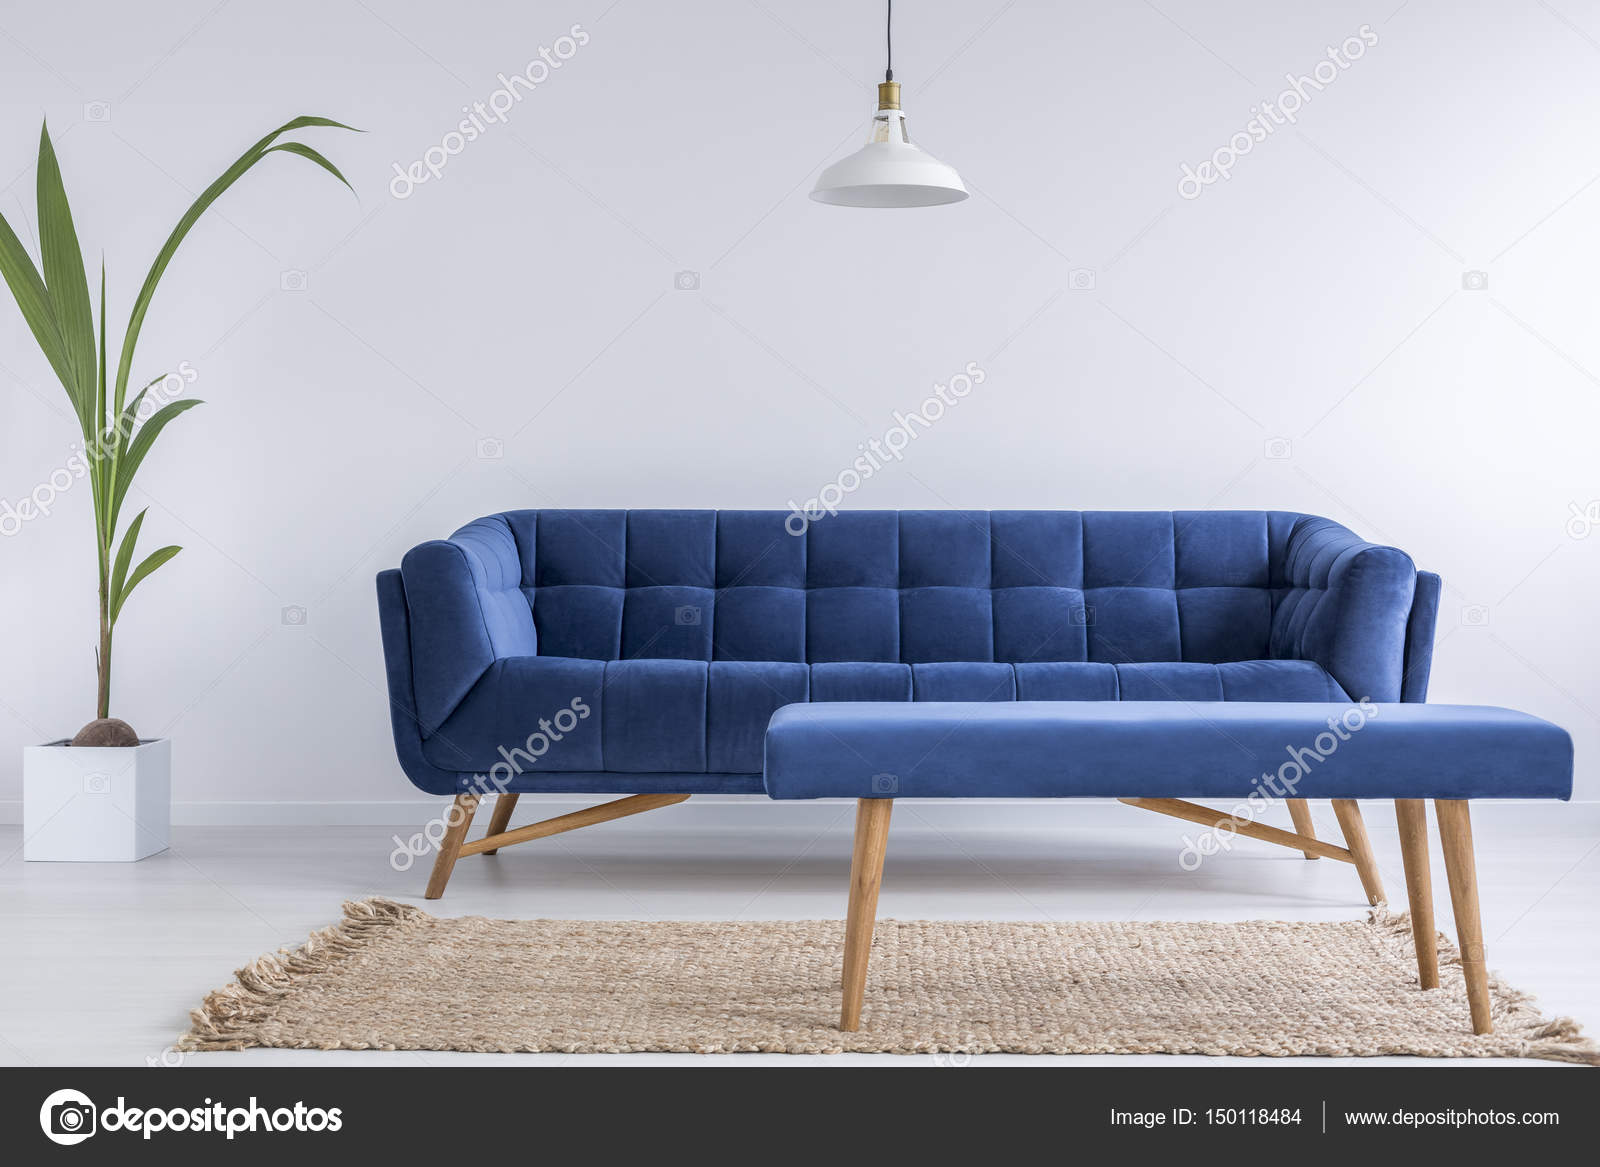 blau sofa trendy grau moderne sectional sofas mikrofaser blau sofa schnitt mit umwandelbar als. Black Bedroom Furniture Sets. Home Design Ideas